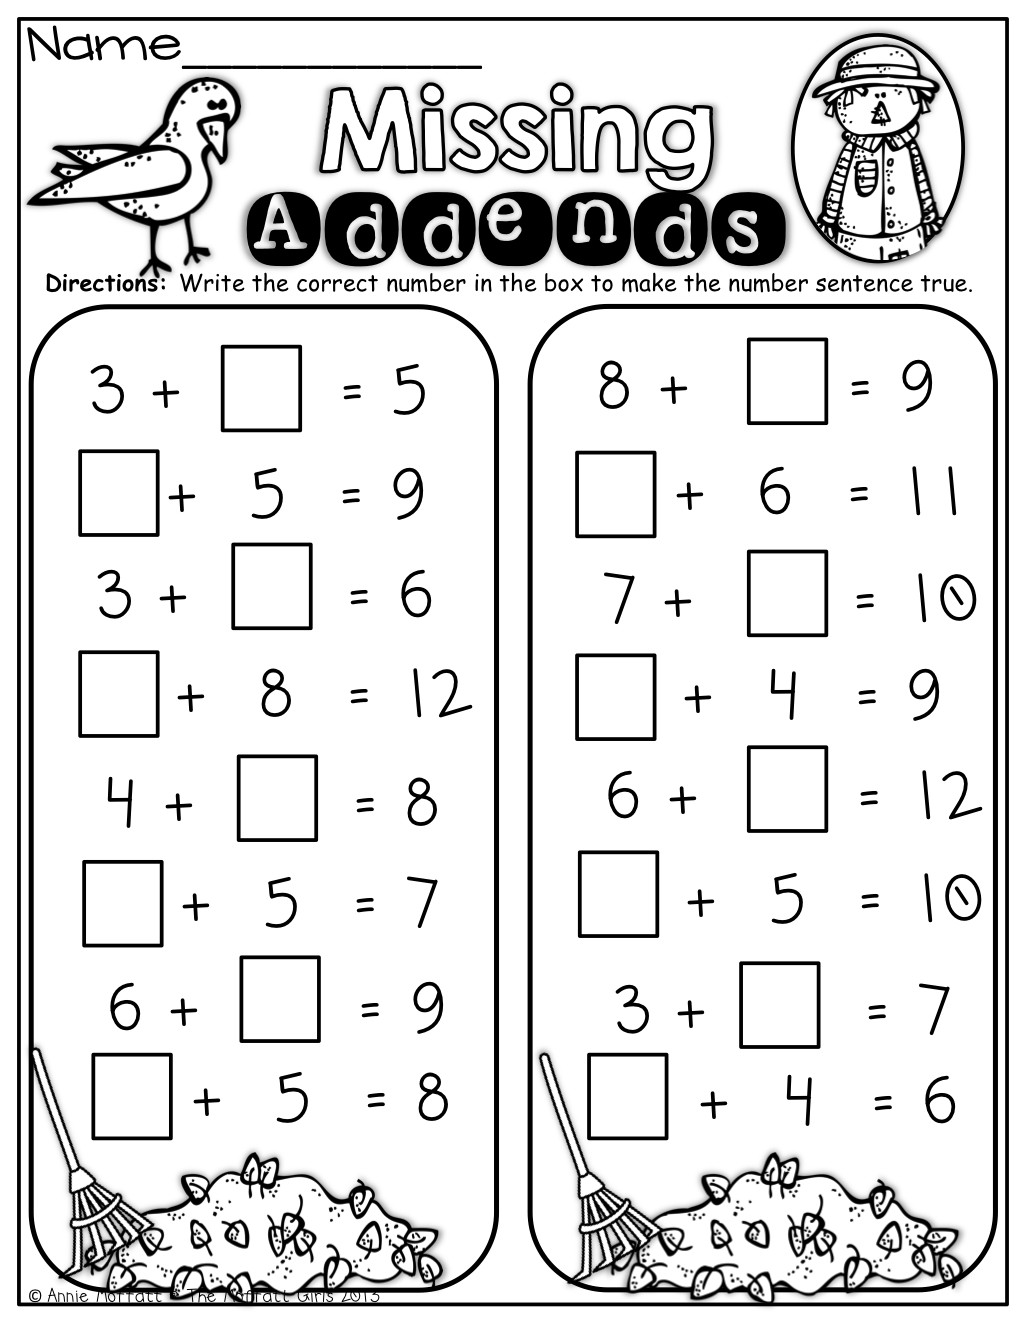 Missing Addends Worksheets First Grade Math Missing Addend Worksheet